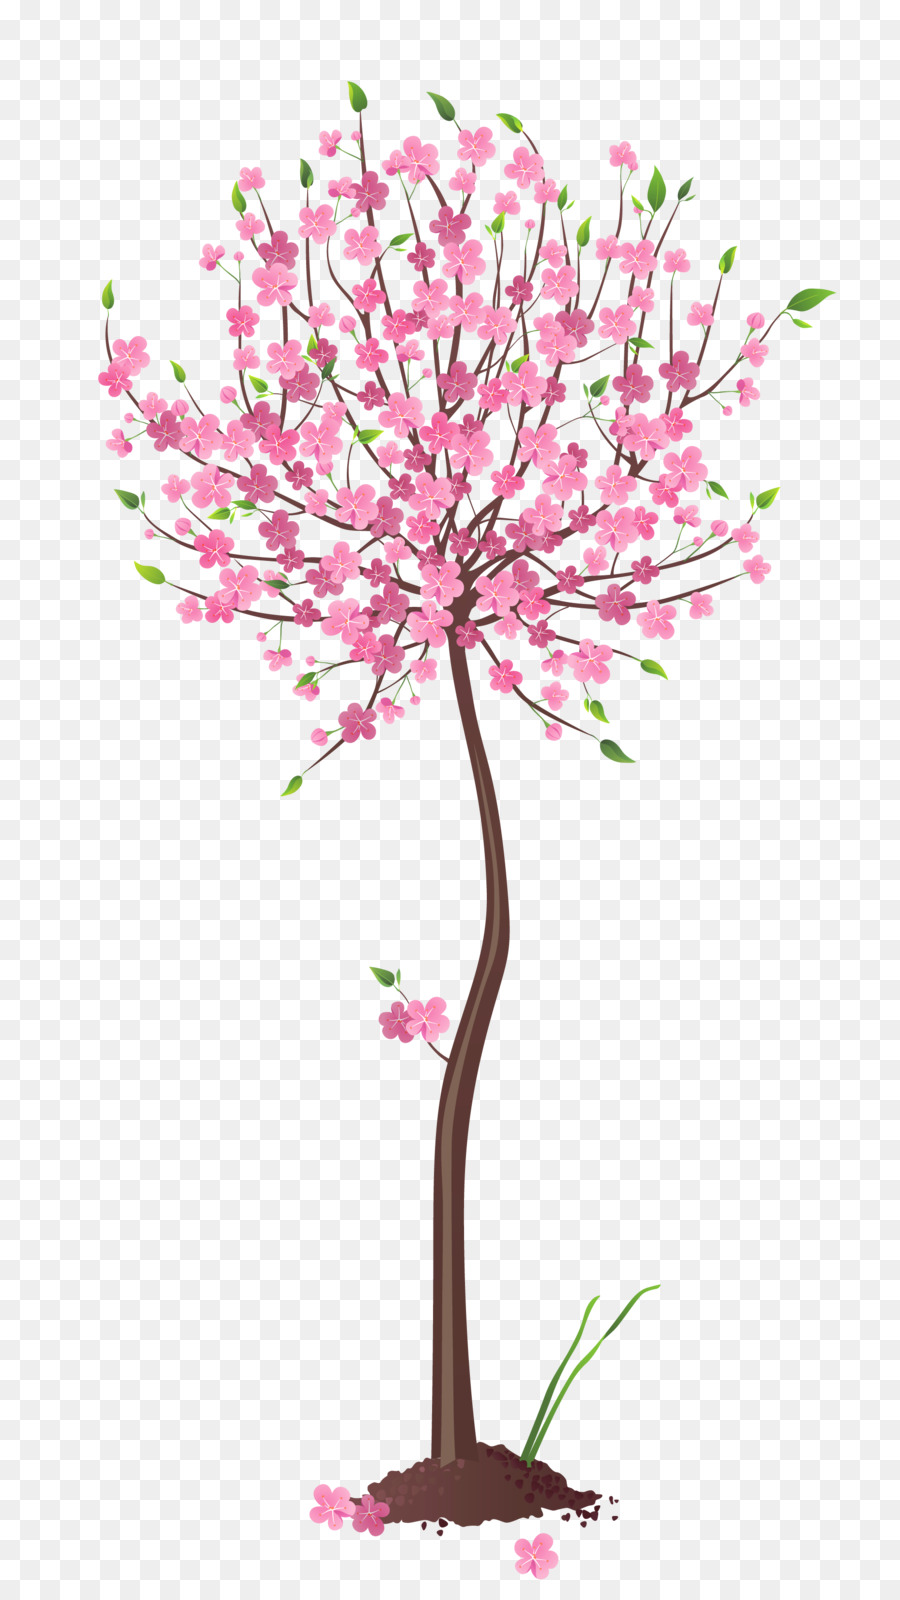 Tree Clip Art Spring Tree Cliparts Png Download 1858 3289 Free